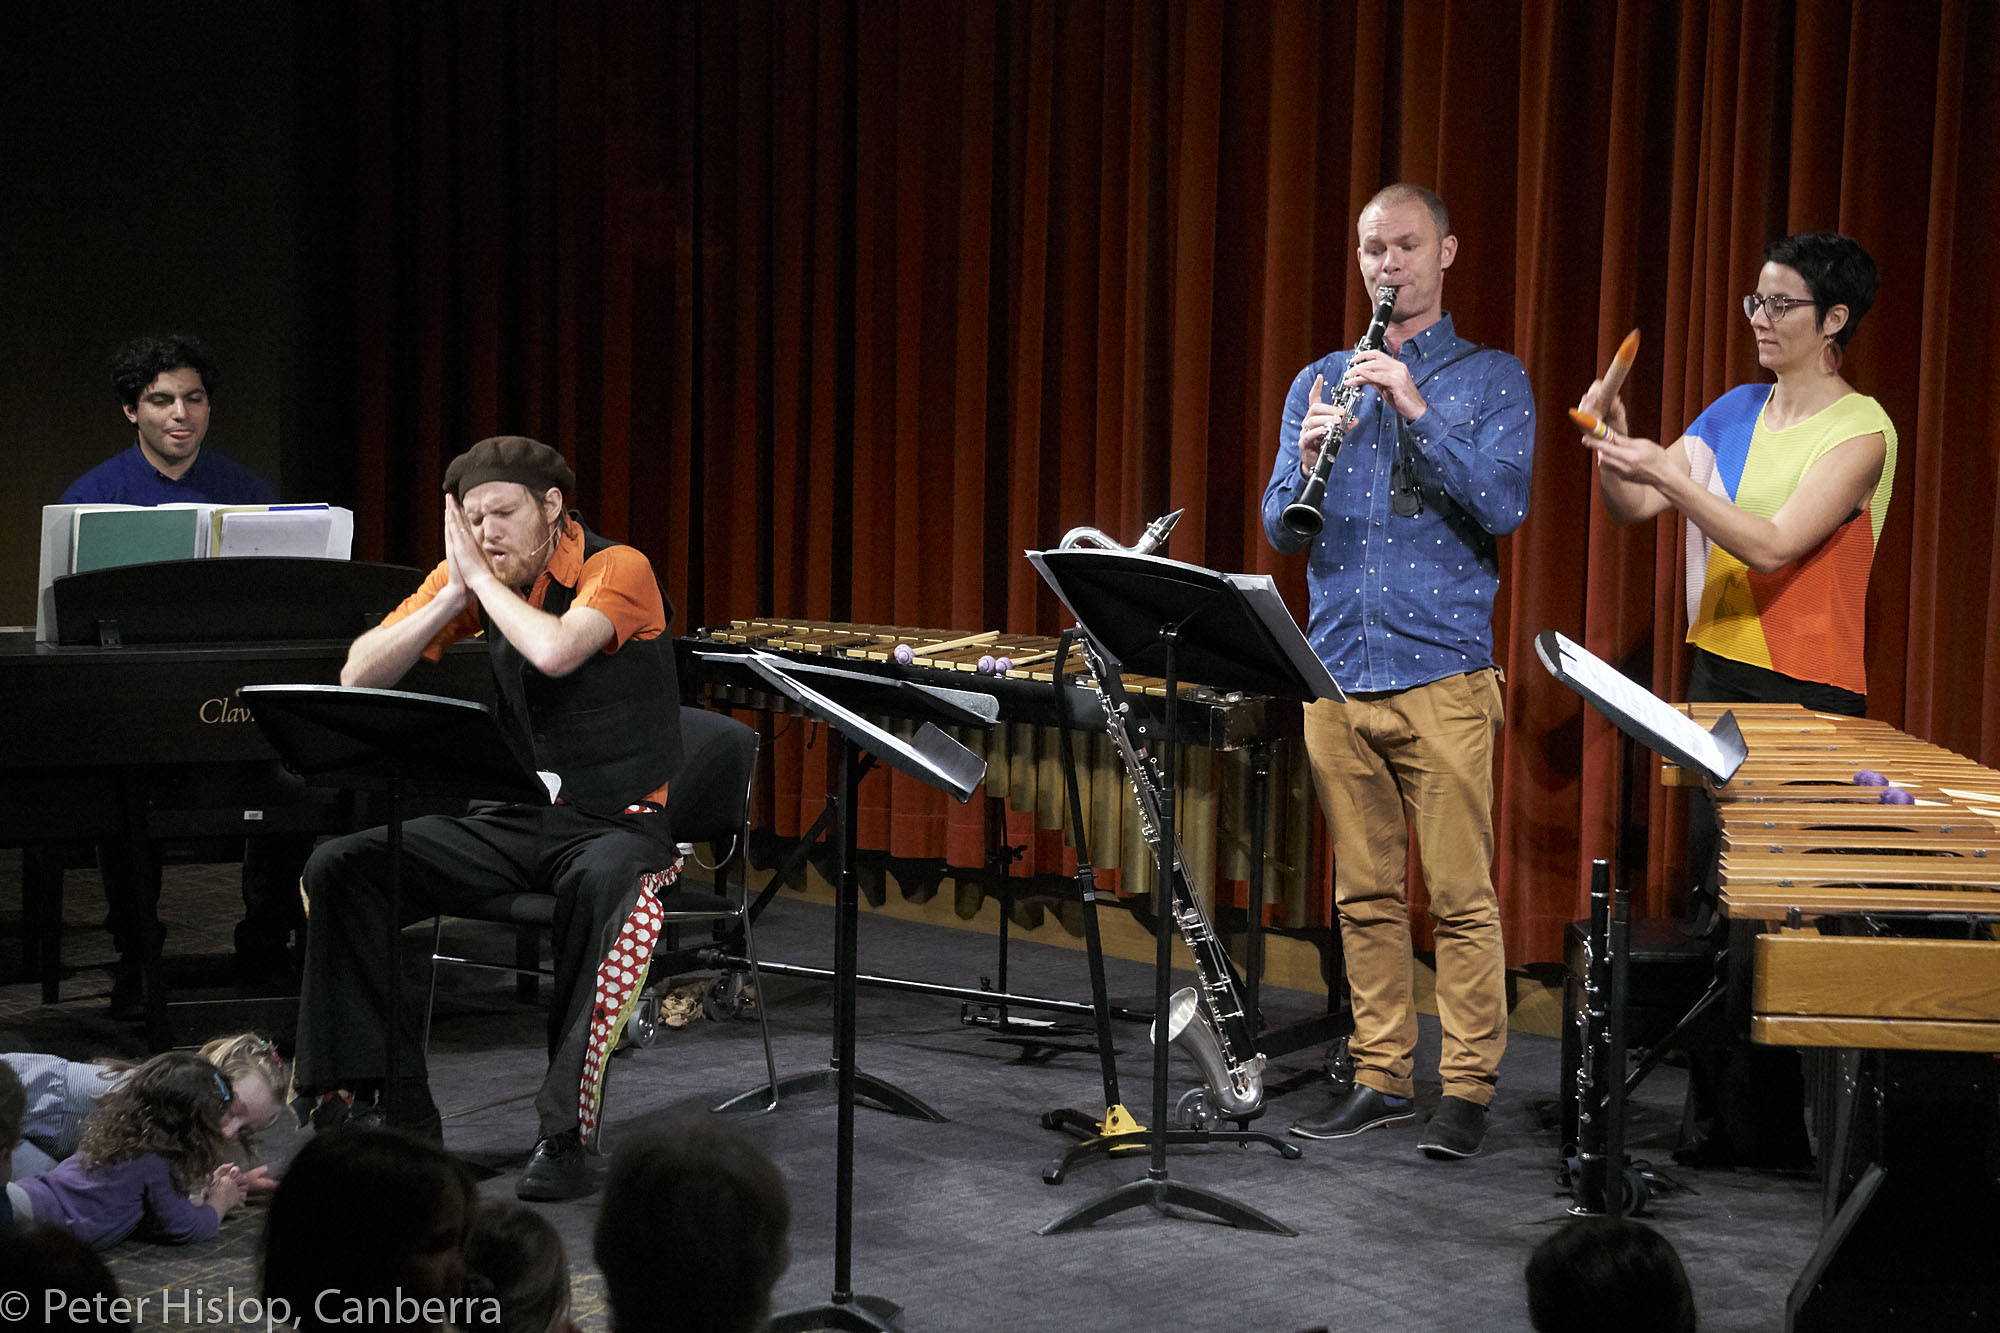 Concert 04 - Blinky Bill. 